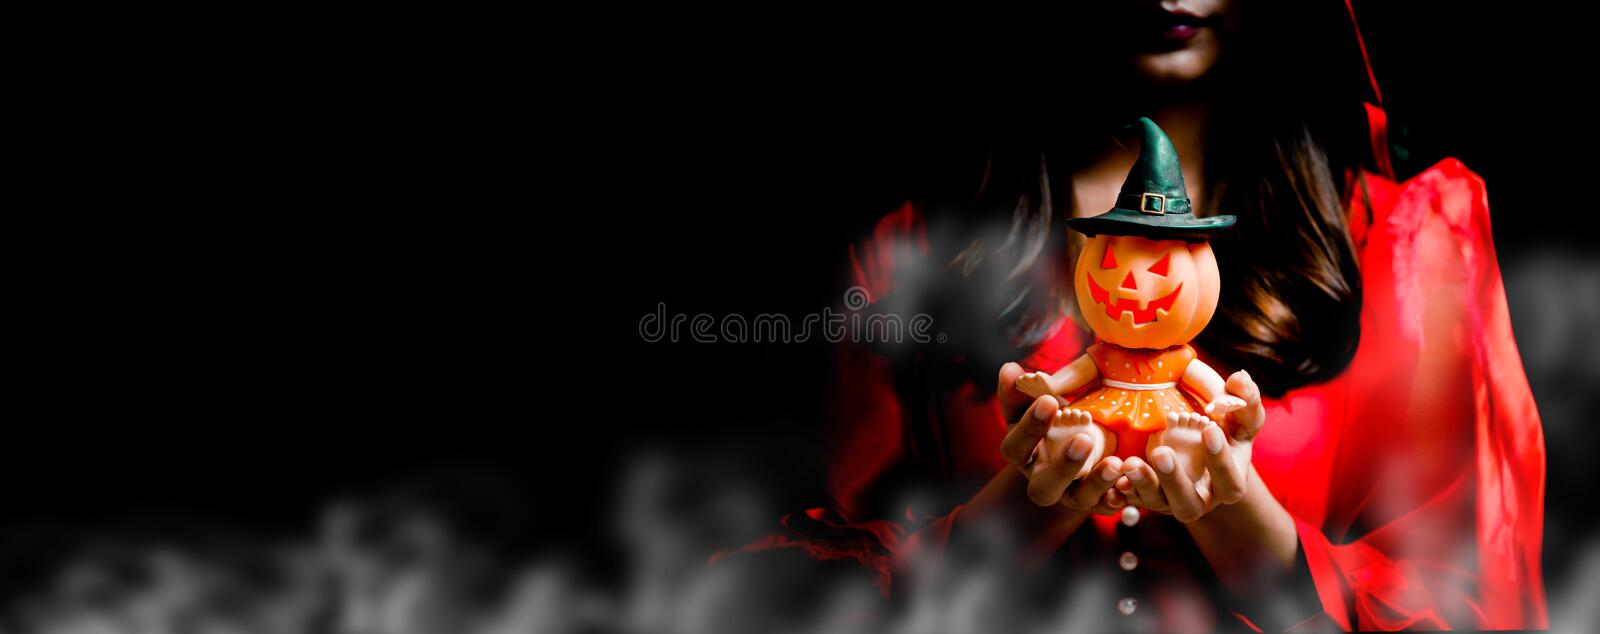 Happy Halloween with pumpkin, trick or treat in autumn season. Happy Halloween. Beautiful woman costume and holding pumpkin toy. Copy space on black background royalty free stock photo